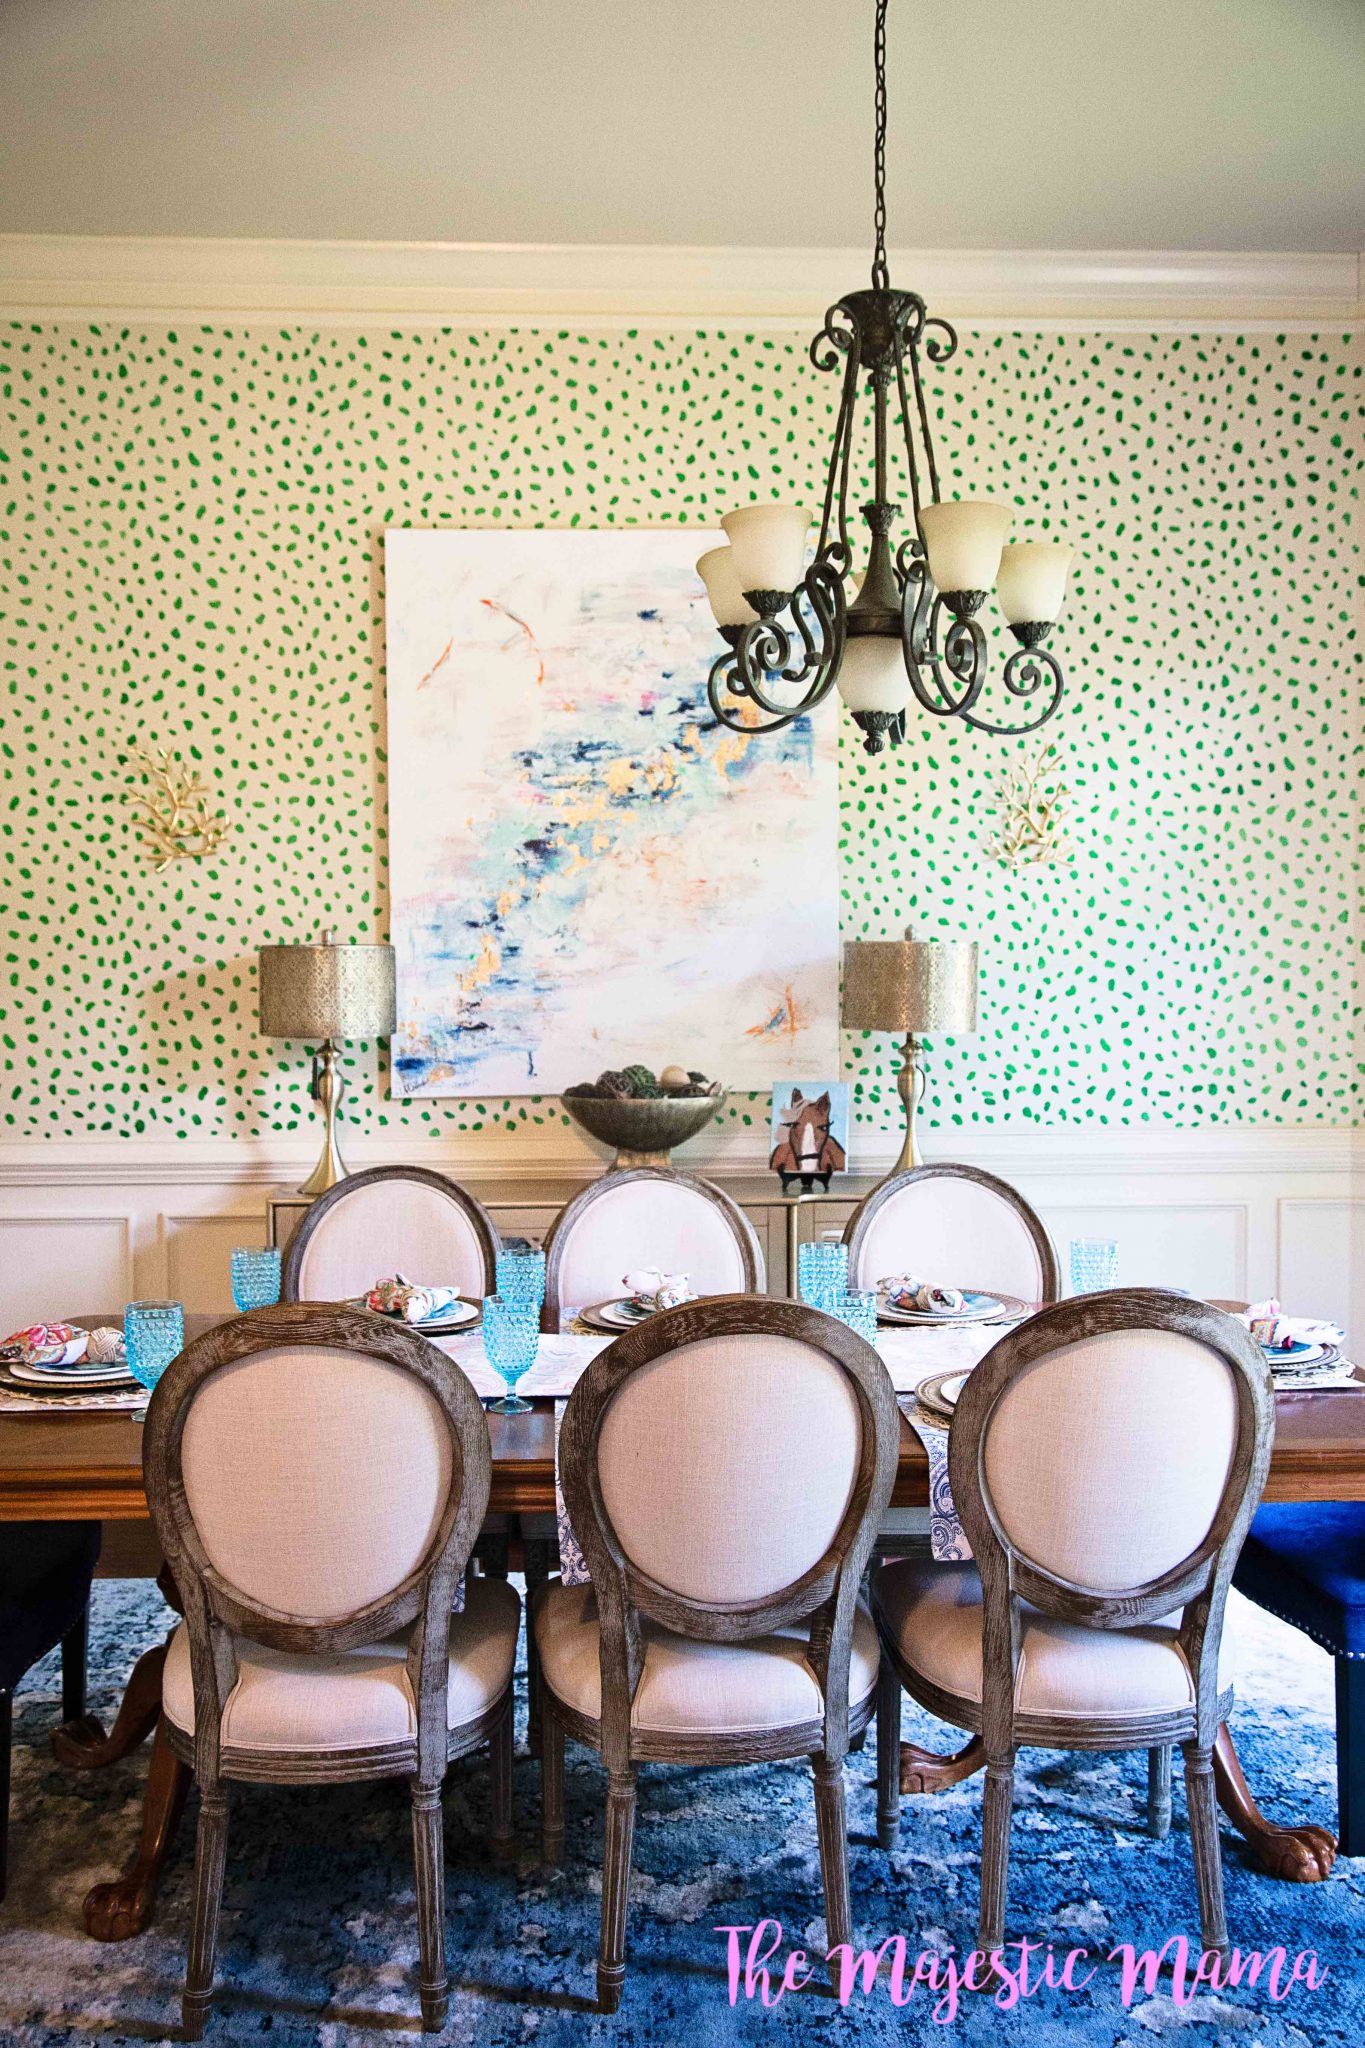 How to Make a Statement With a Chandelier – The Majestic Mama